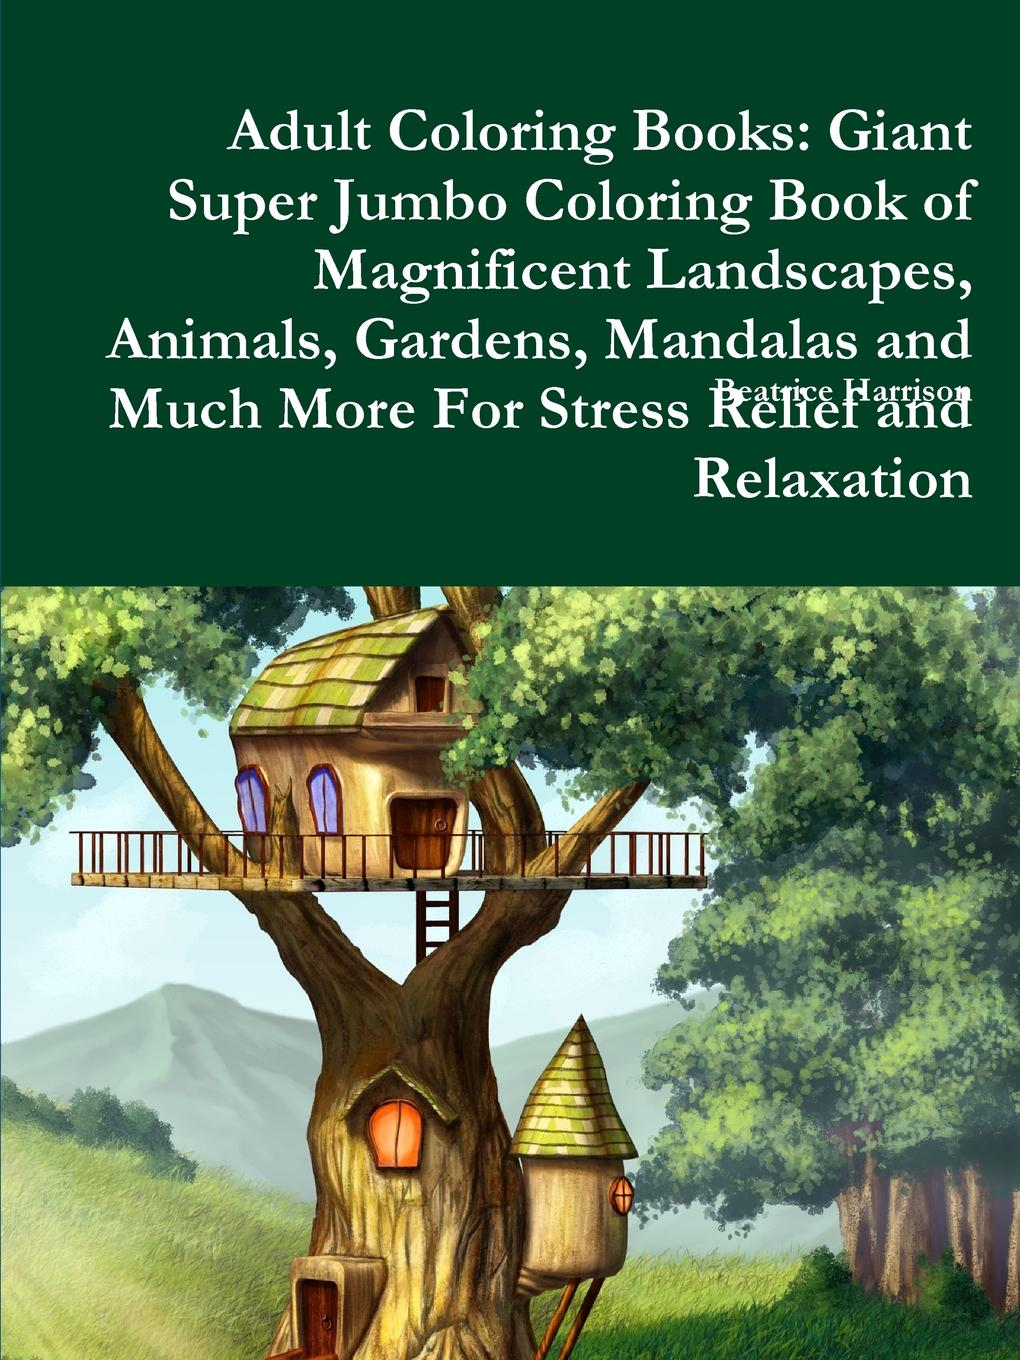 Beatrice Harrison Adult Coloring Books. Giant Super Jumbo Coloring Book of Magnificent Landscapes, Animals, Gardens, Mandalas and Much More For Stress Relief and Relaxation colorful hexagon fidget spinner adhd stress relief toy relaxation gift for adults